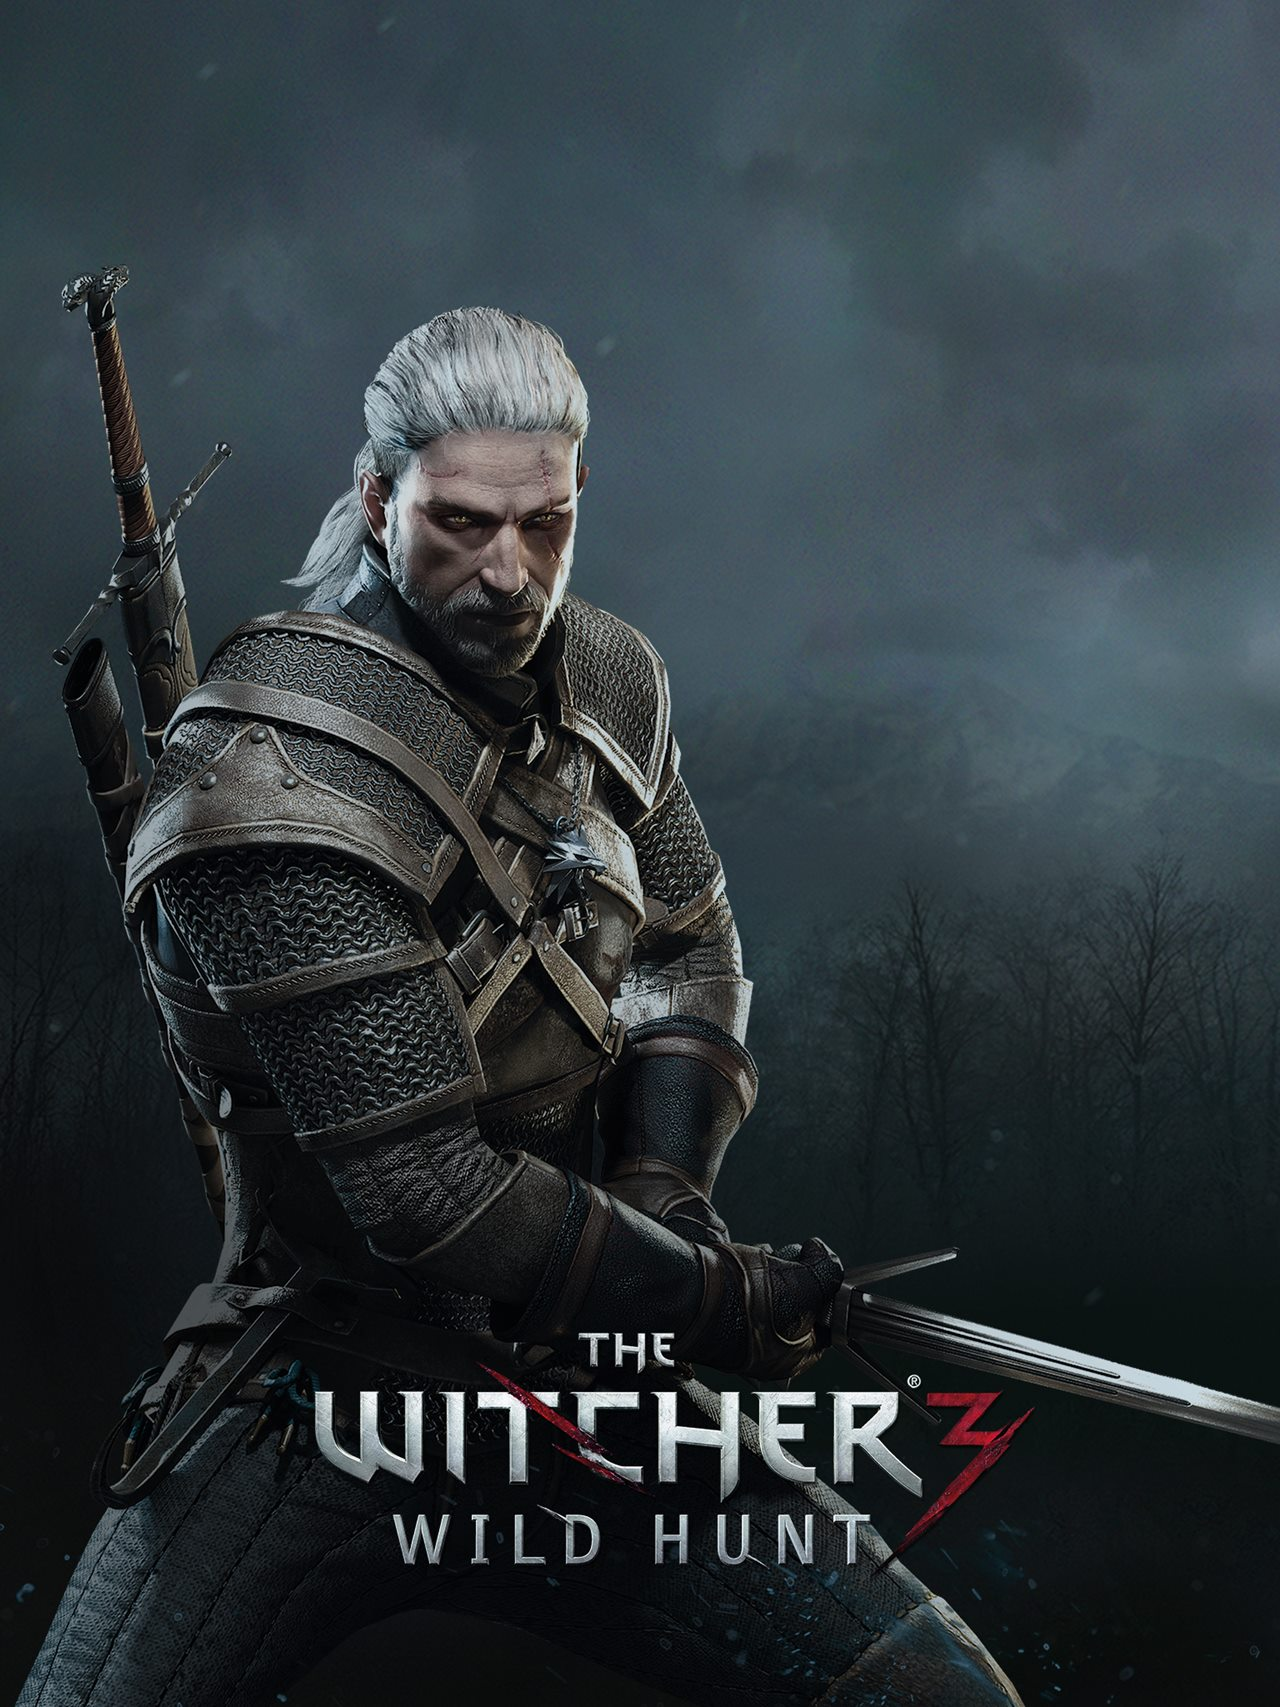 The Witcher 3 Wild Hunt Gaming Wallpapers And Trailer ...